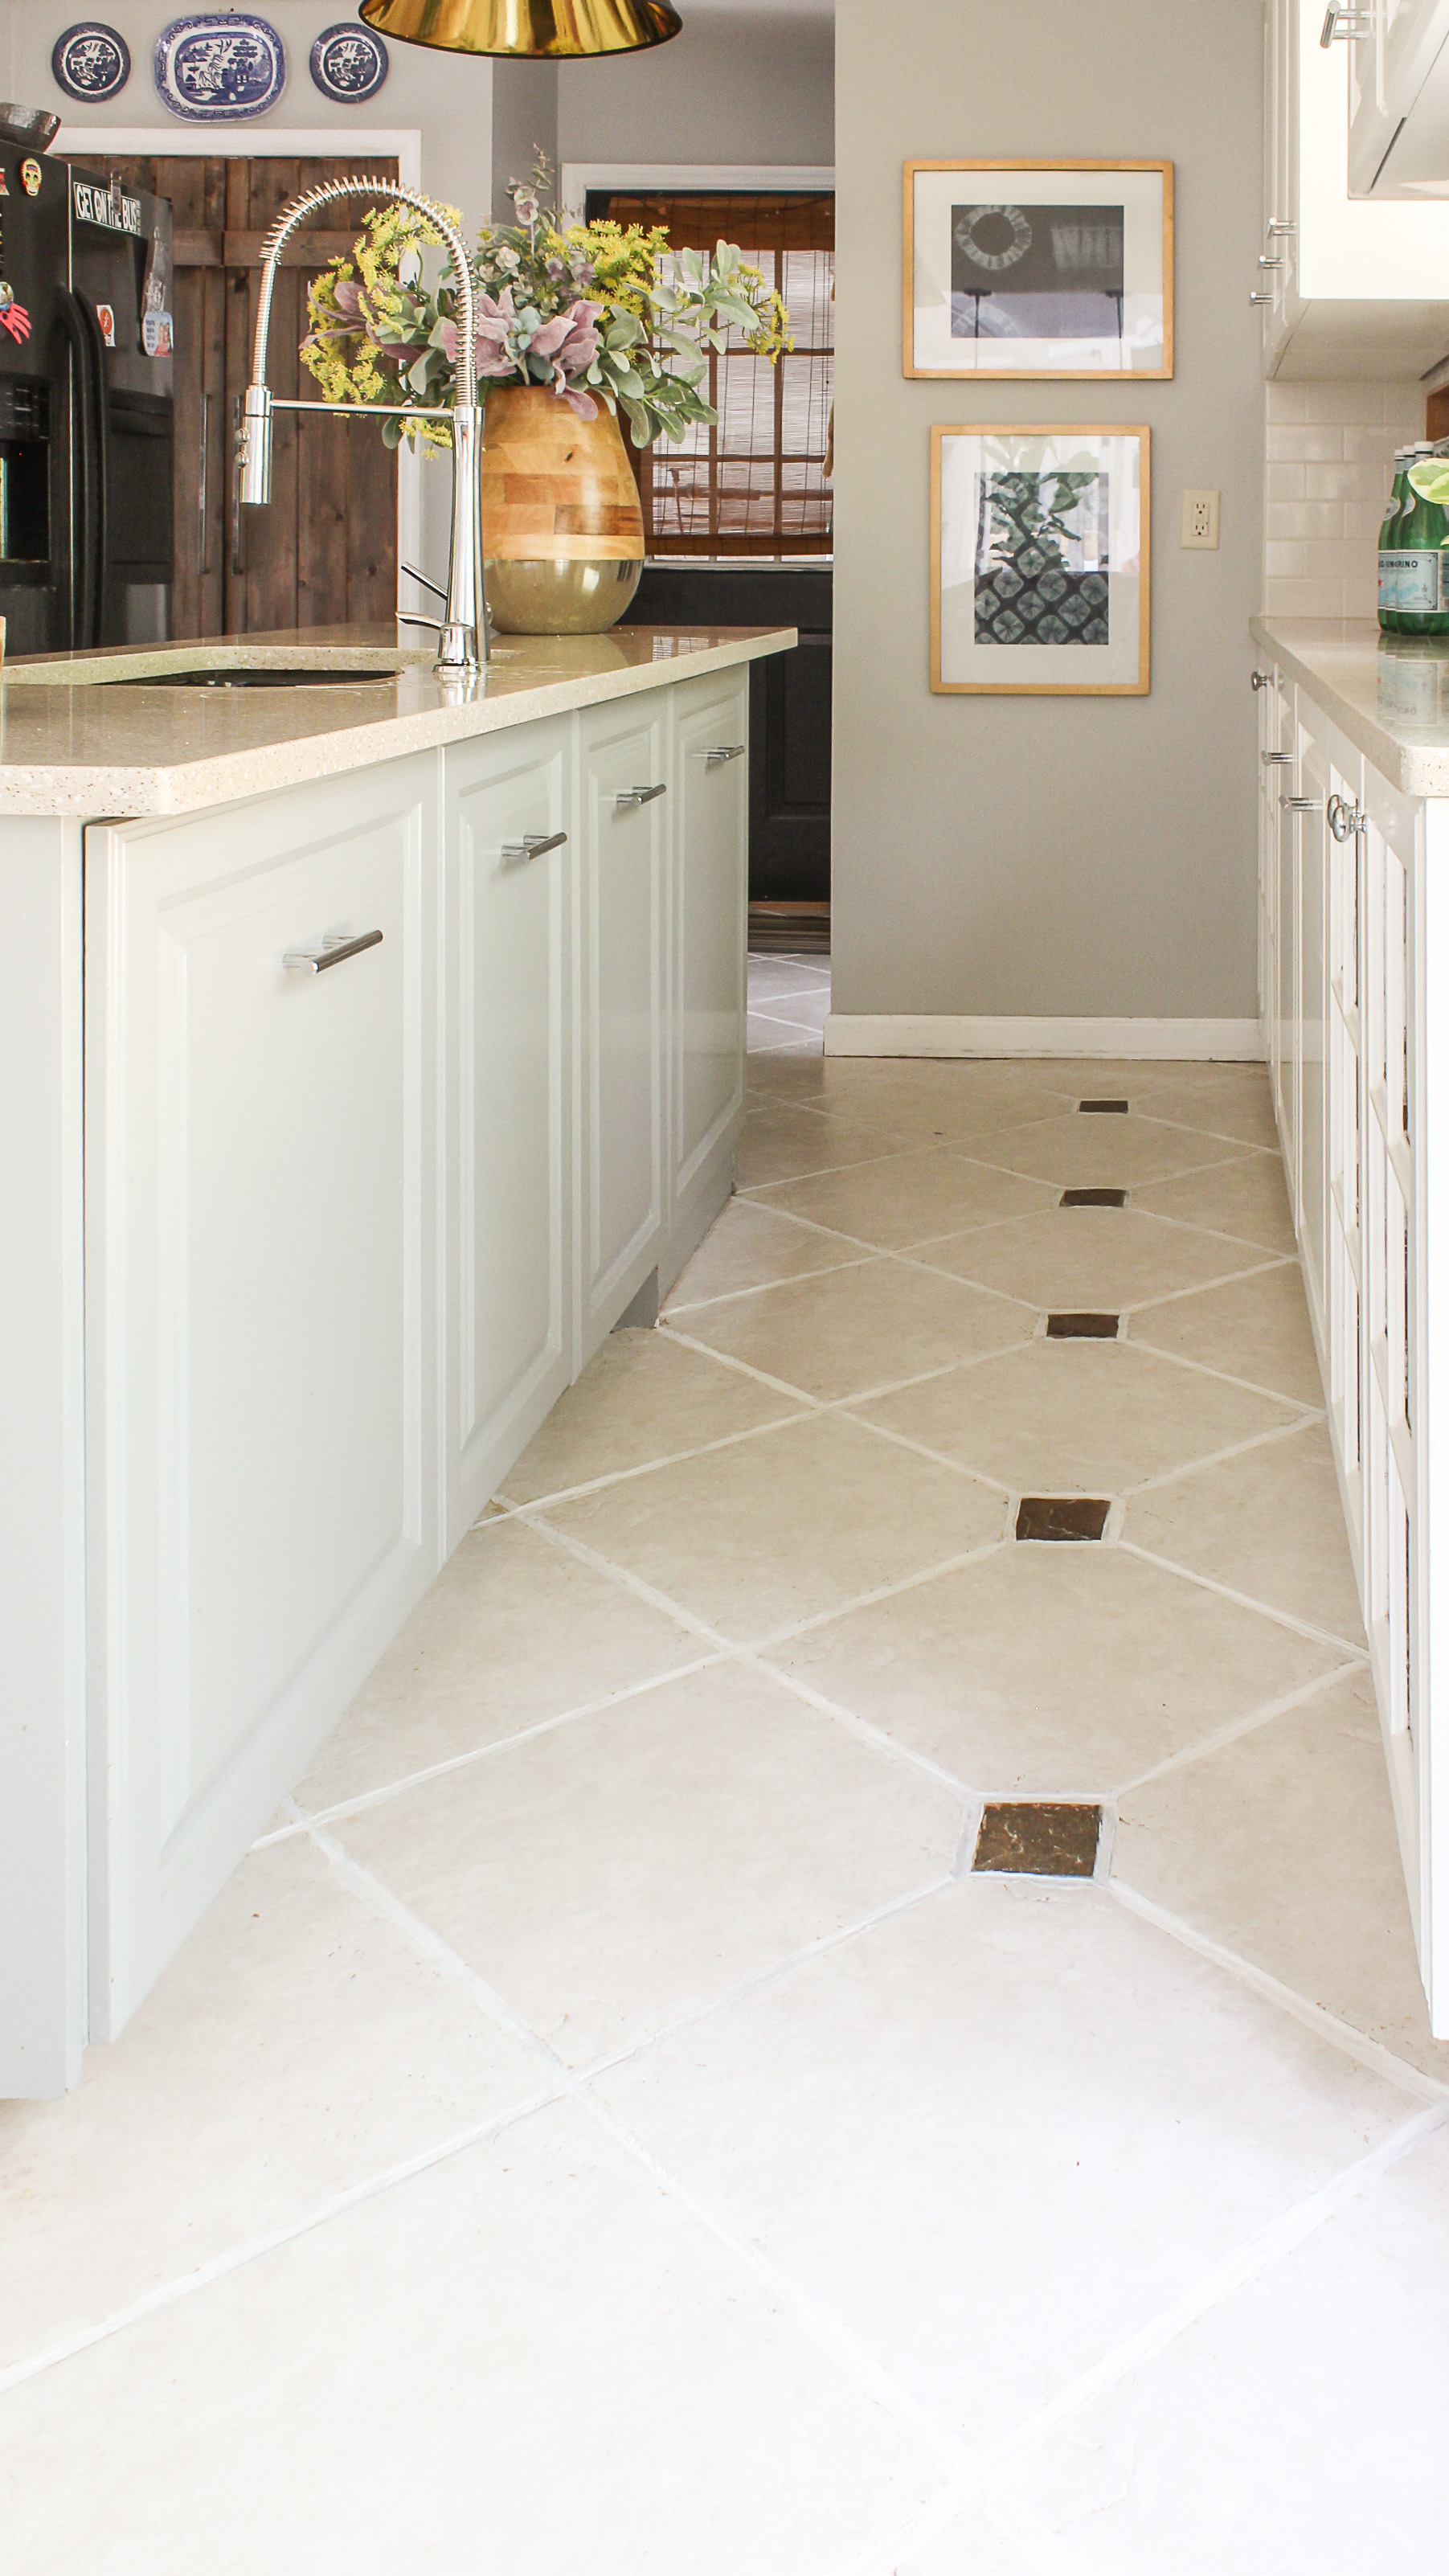 Kitchen Floor Tiles Pictures The Easiest Way To Clean Filthy Neglected Tile Flooring